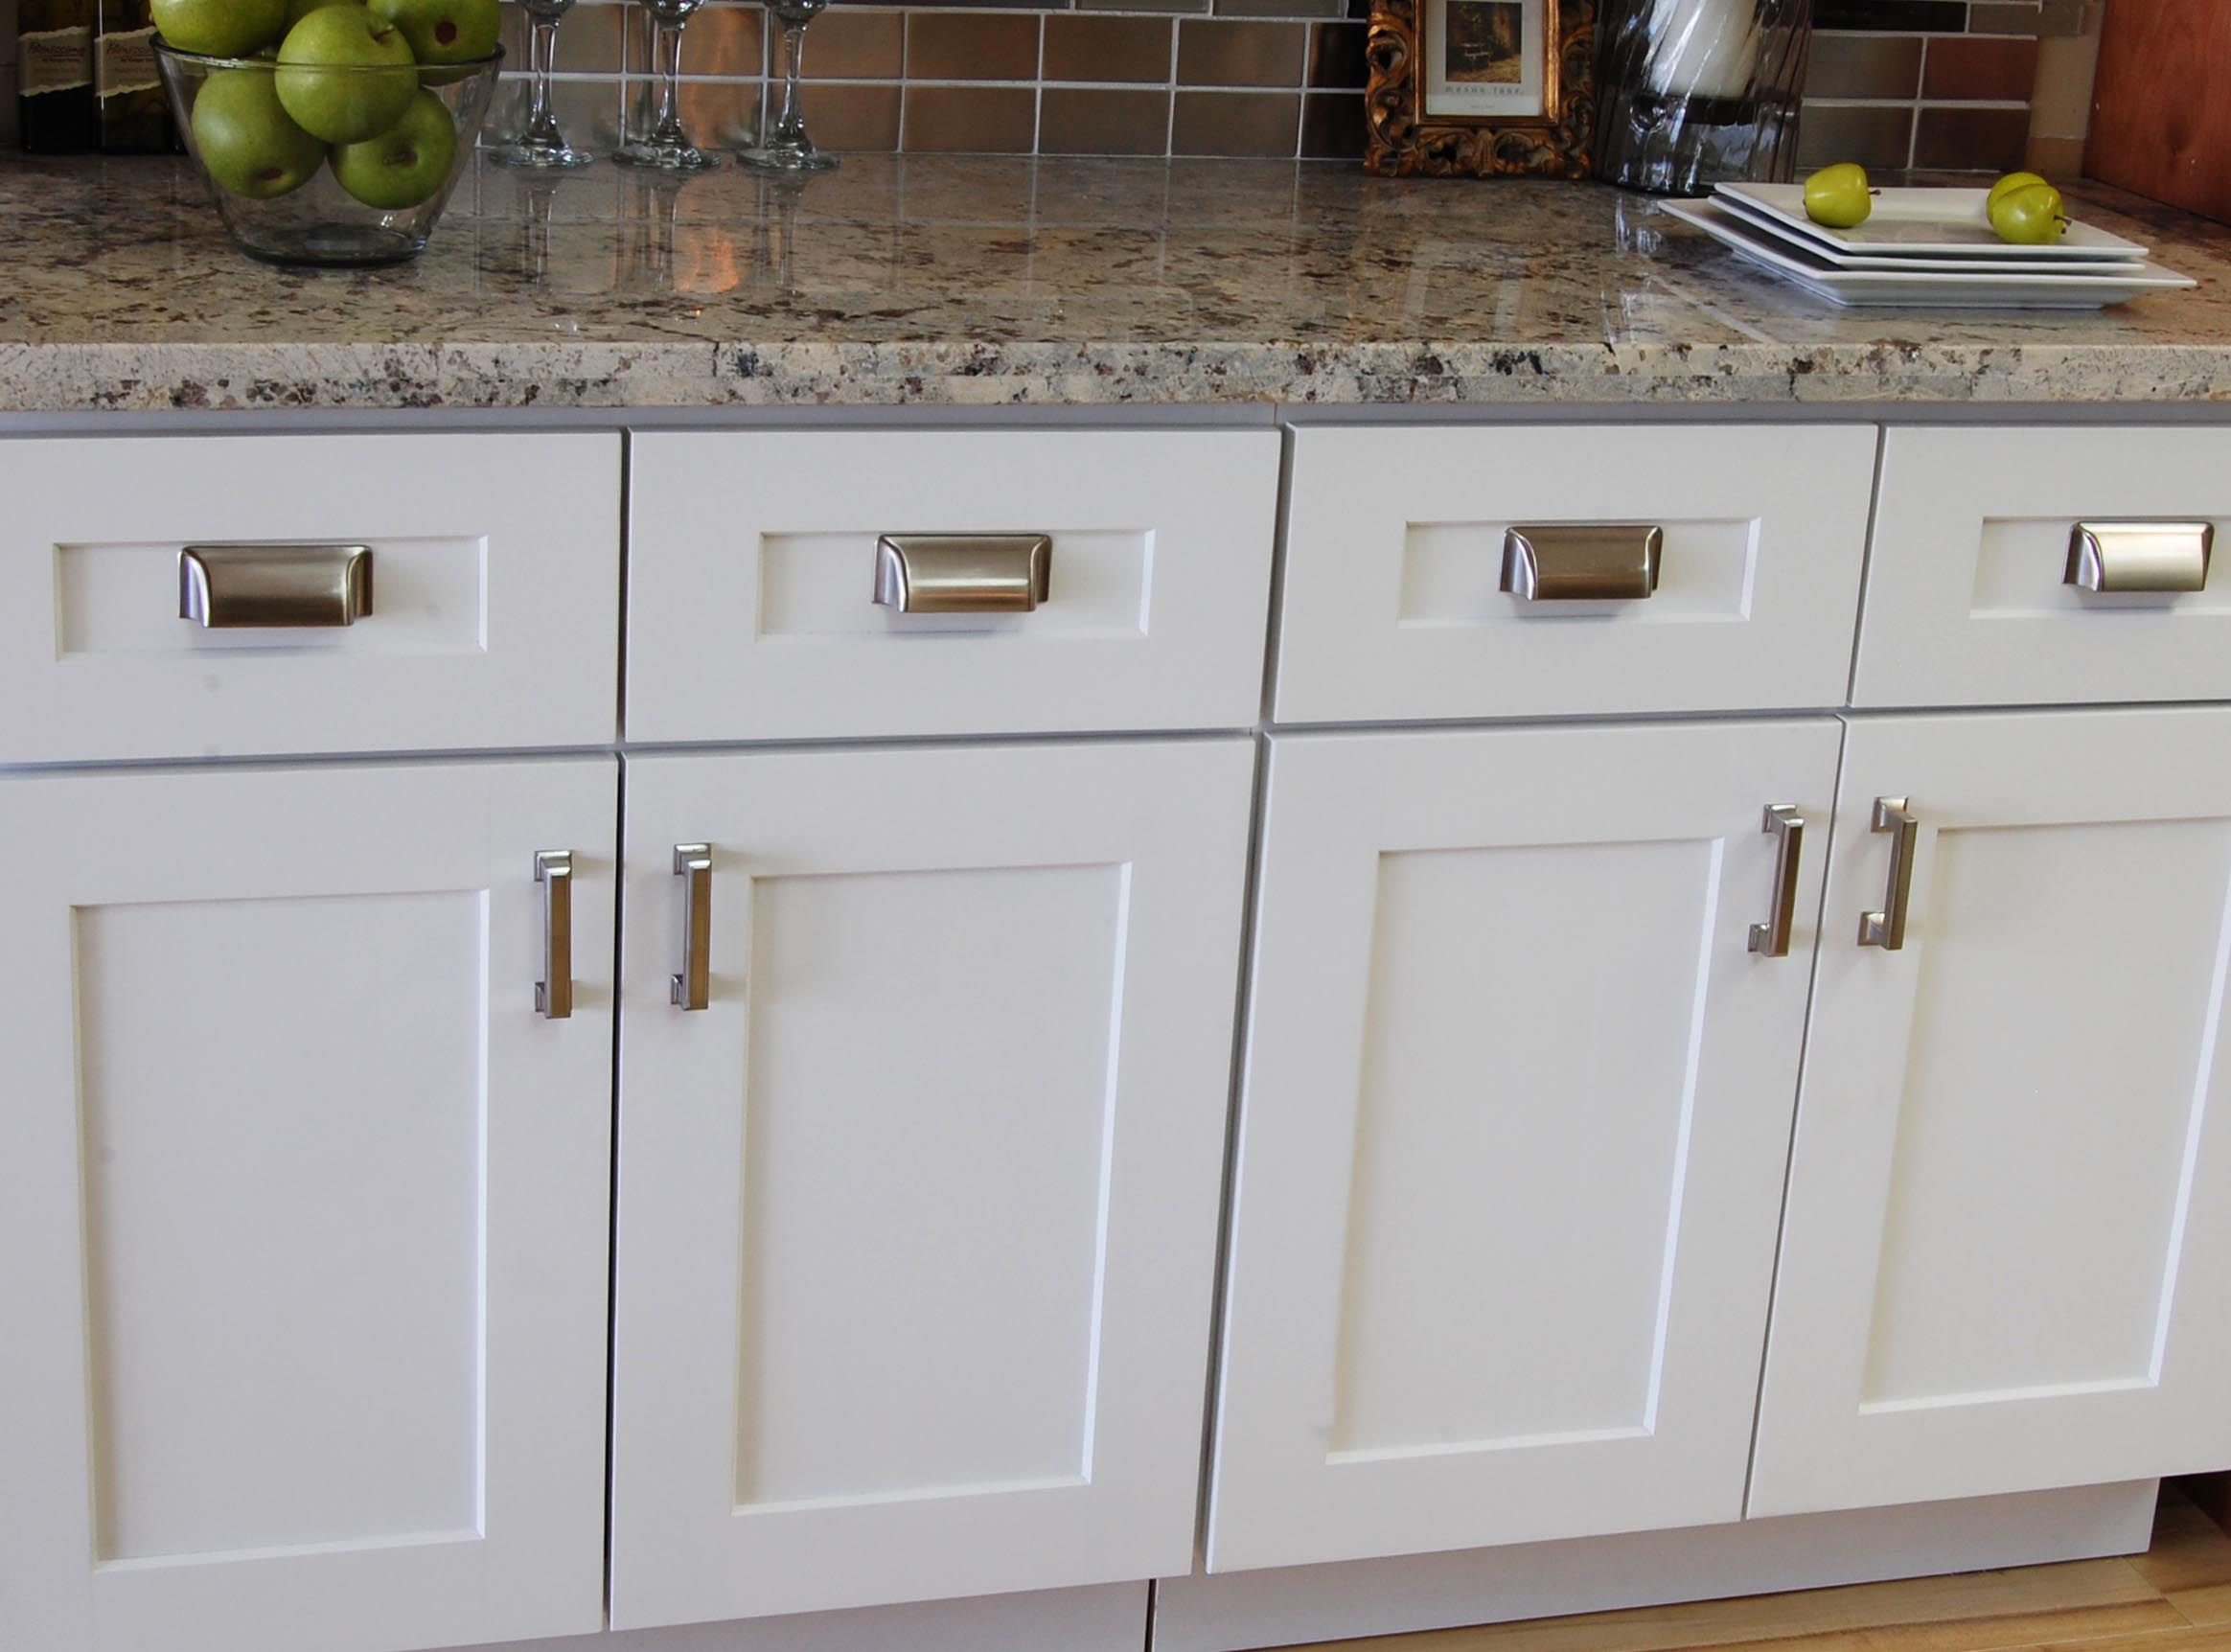 Beau White Shaker Kitchen Cabinet Doors With Chrome Handles